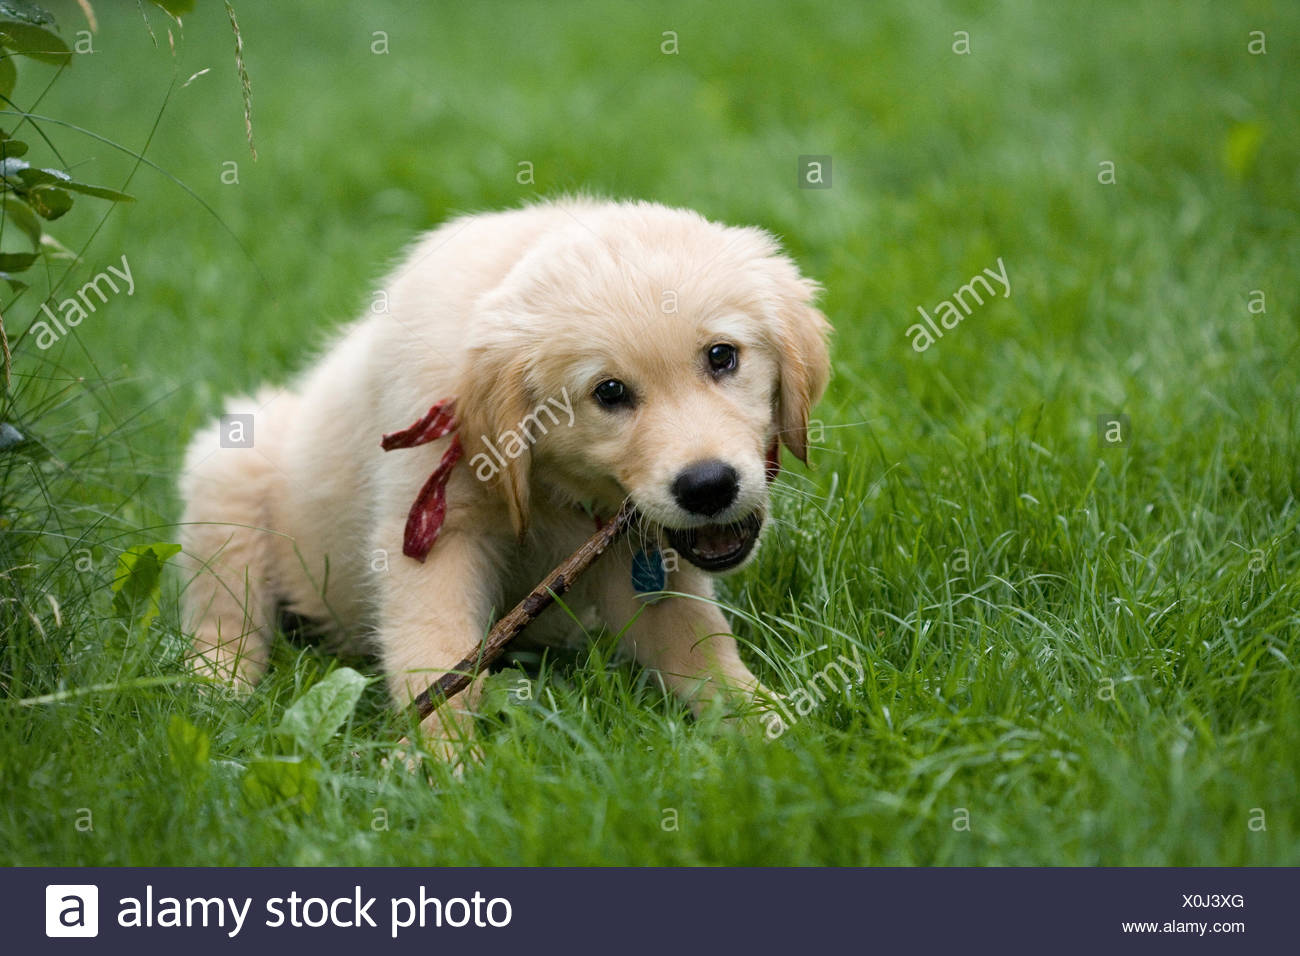 Golden Retriever puppy chewing on a branch, Germany Stock Photo